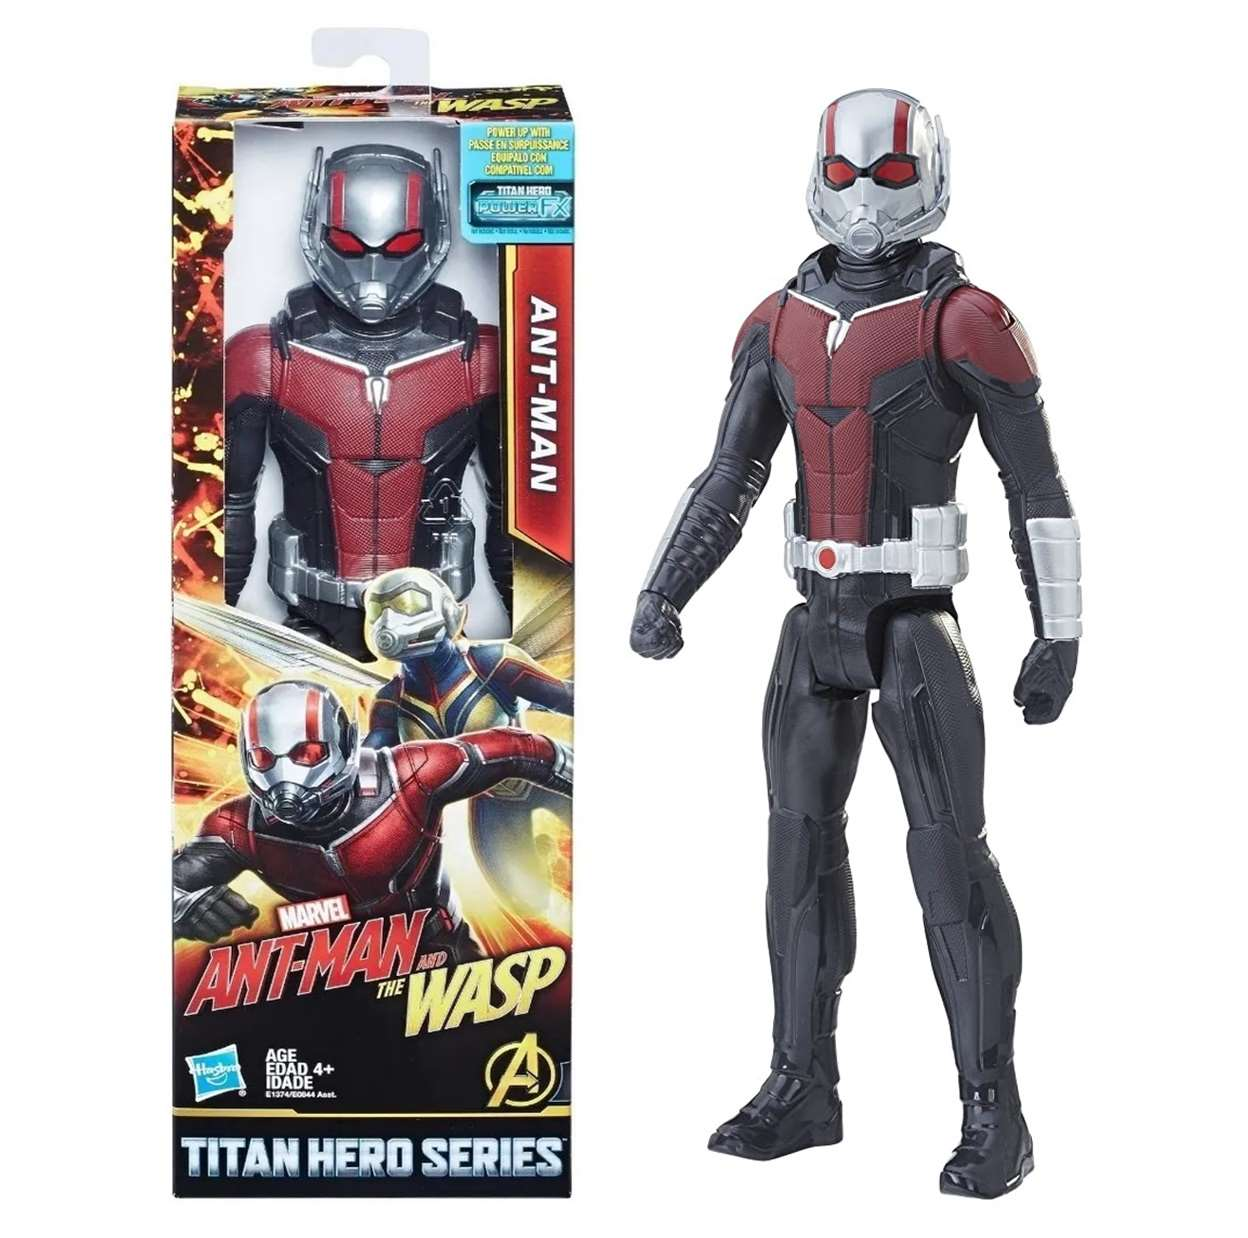 Ant Man Titan Hero Series Ant Man And The Wasp Movie